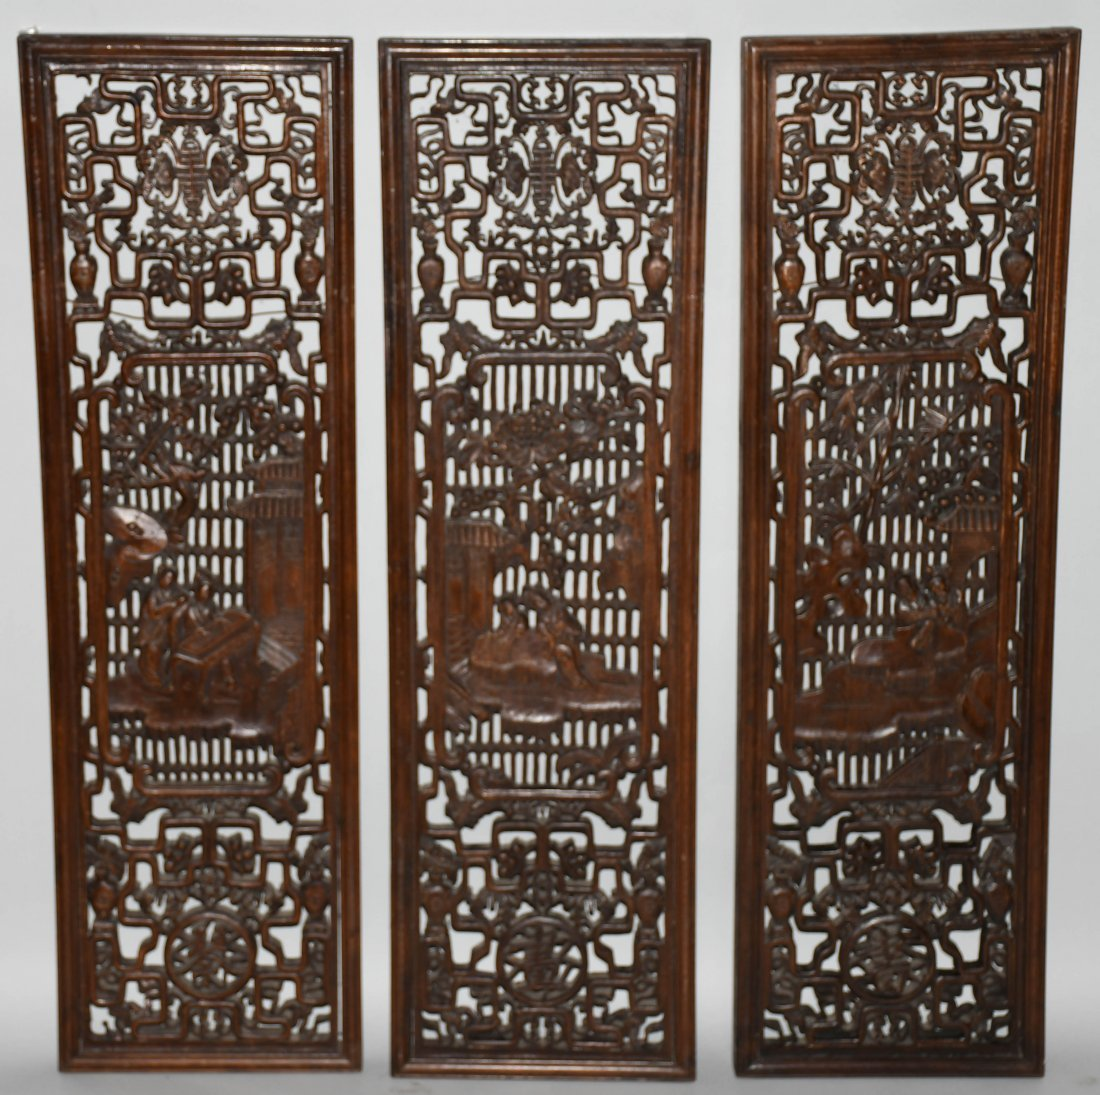 Set of 3 VINTAGE CHINESE WOOD CARVED WALL PANELS